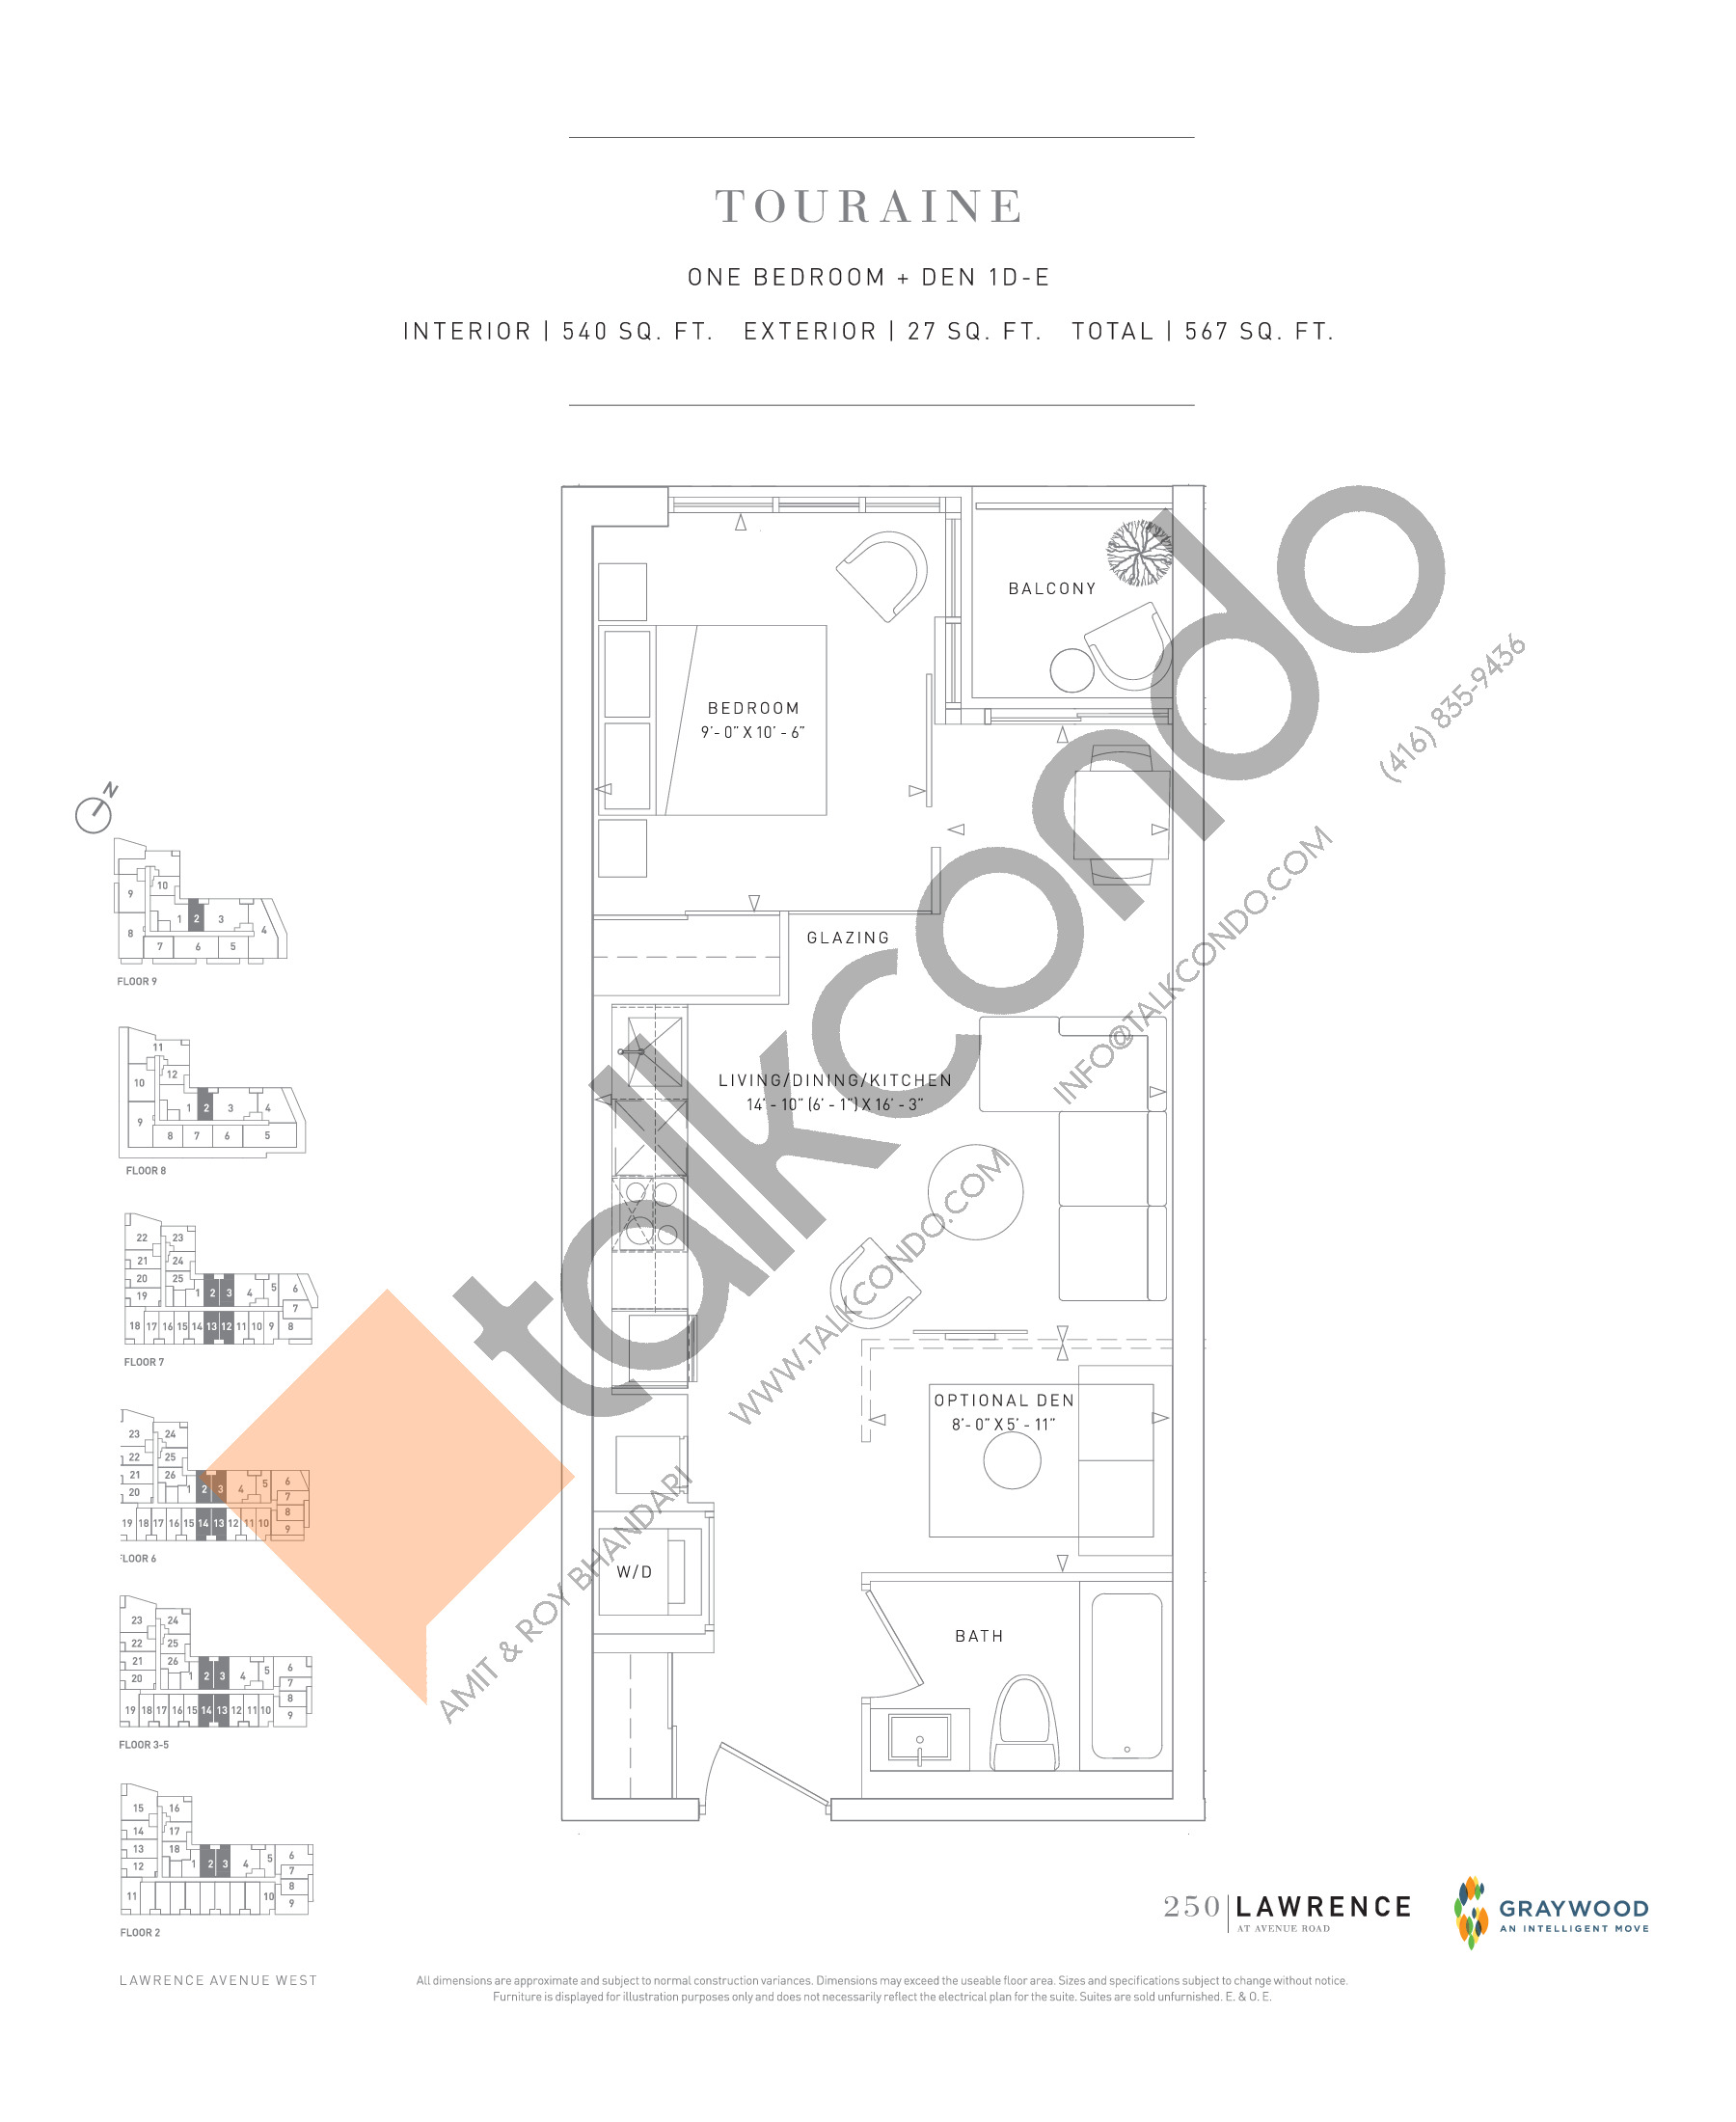 Touraine Floor Plan at 250 Lawrence Avenue West Condos - 540 sq.ft